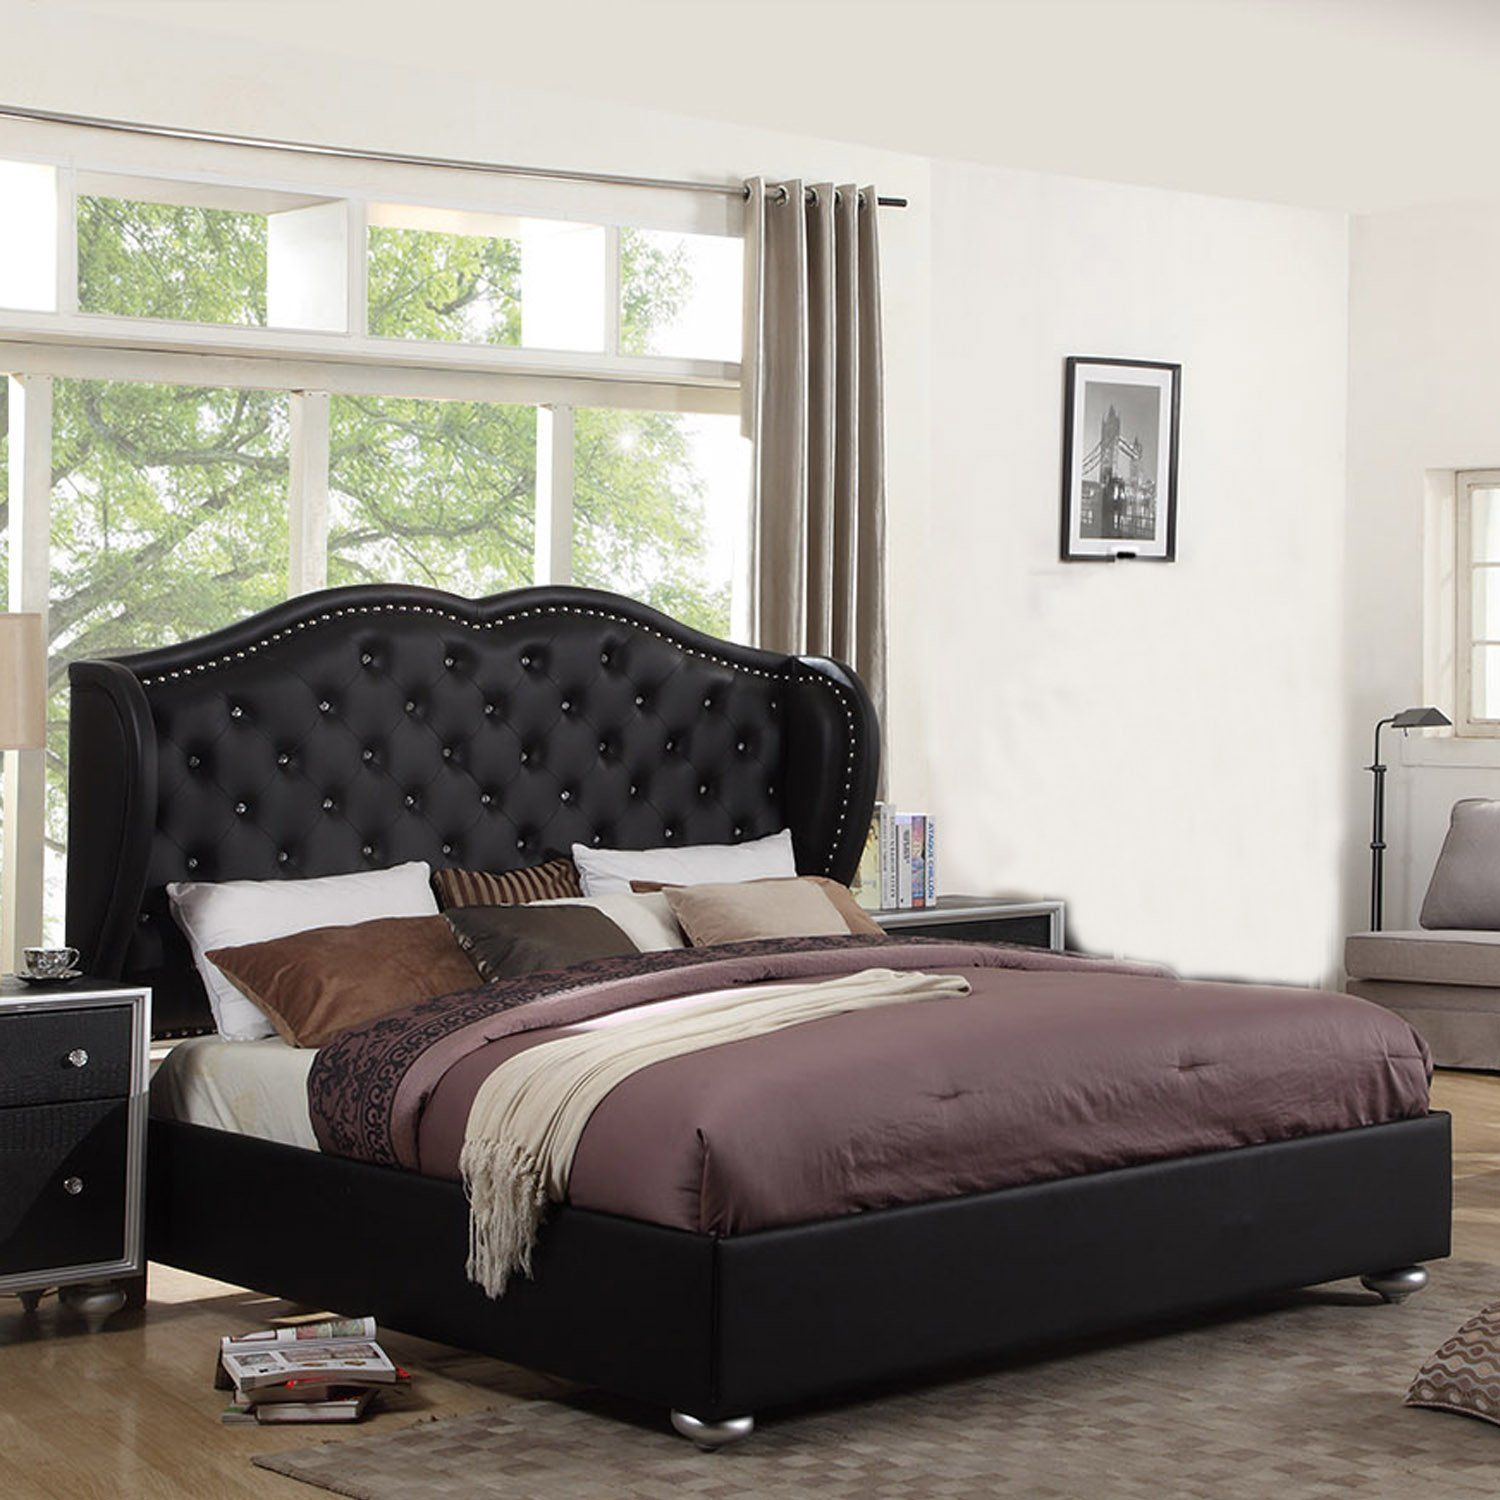 Best Ufe Courtney Black Platform Bed Diamond Tufting With Upholstery Headboard California King 400 x 300